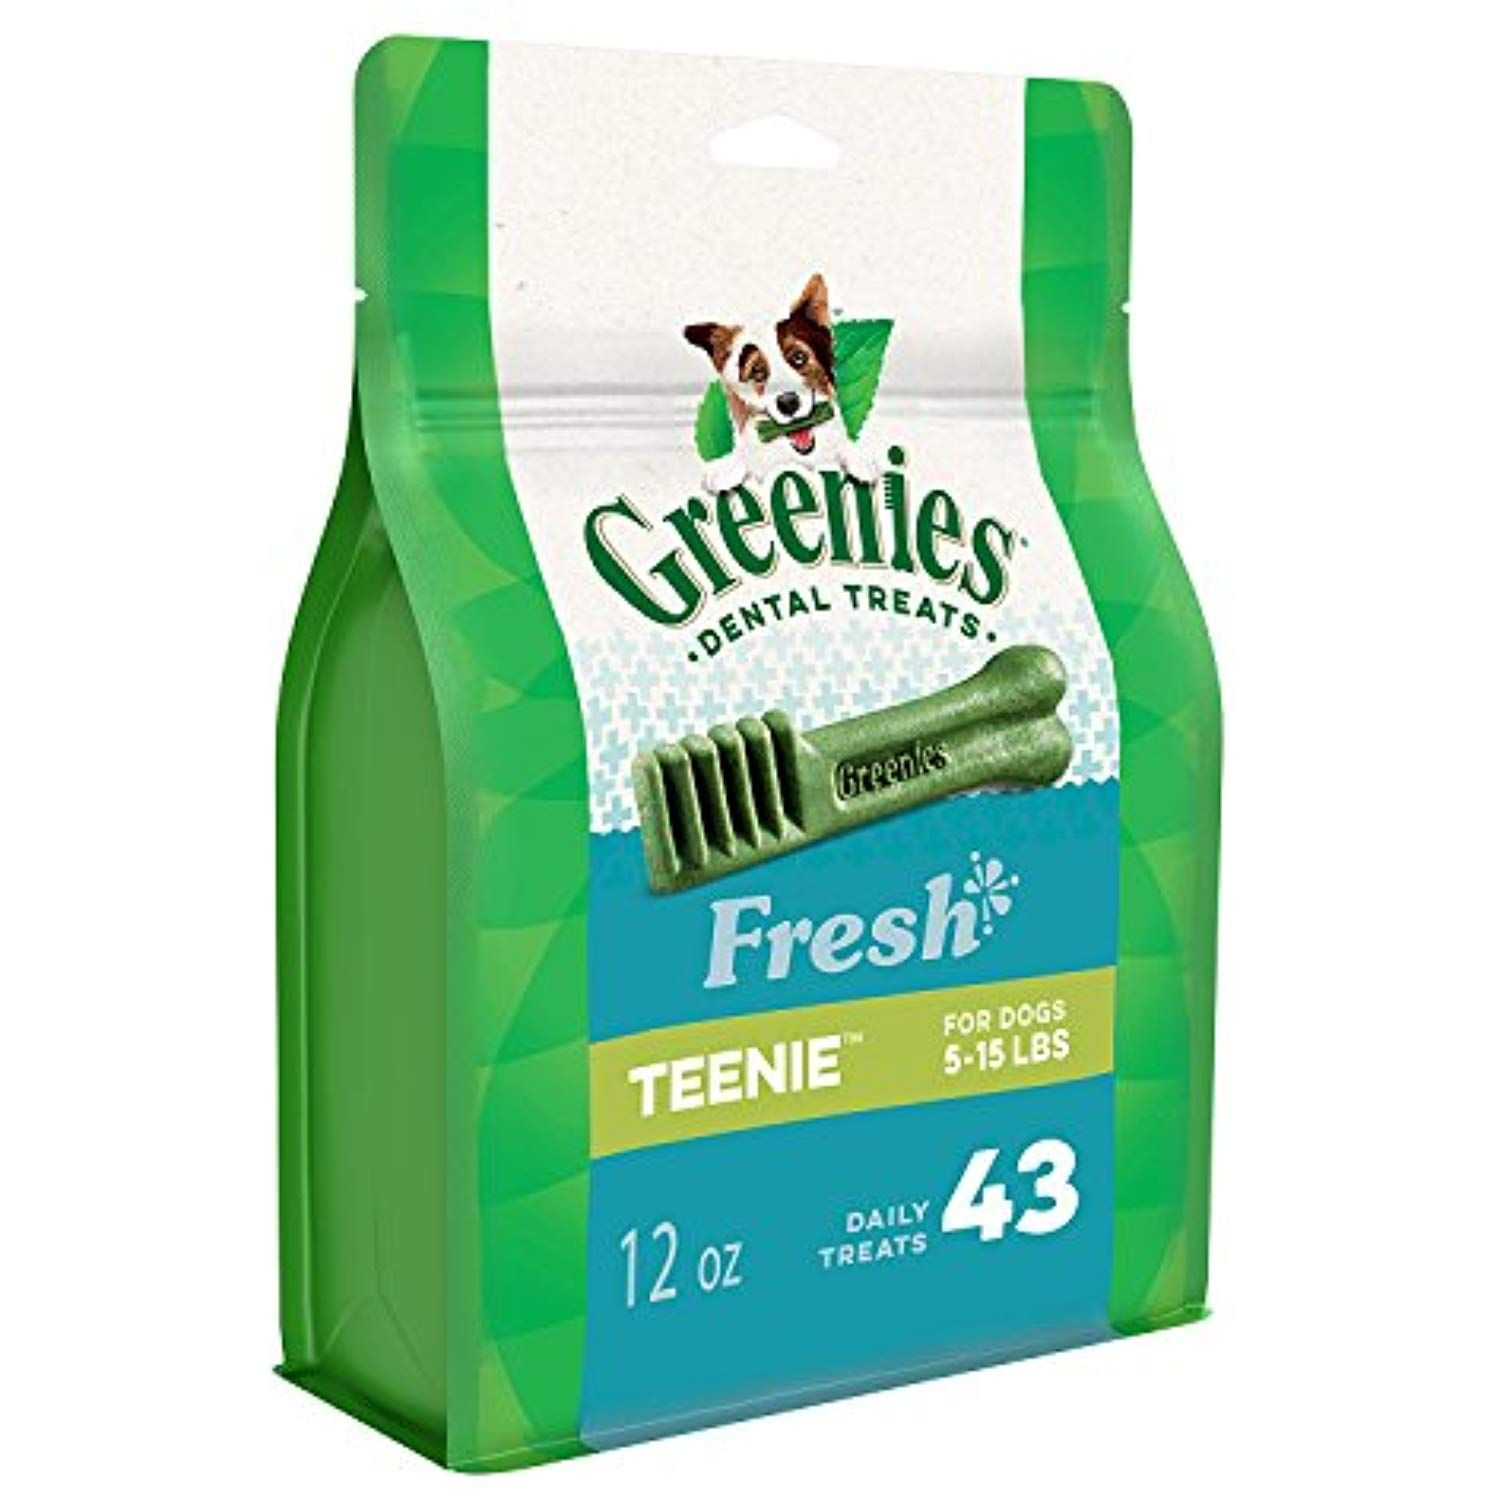 Greenies Fresh Teenie Dental Dog Treats 12 Oz Pack 43 Treats Check Out This Great Product This Dog Dental Treats Dog Dental Chews Greenies Dog Treats